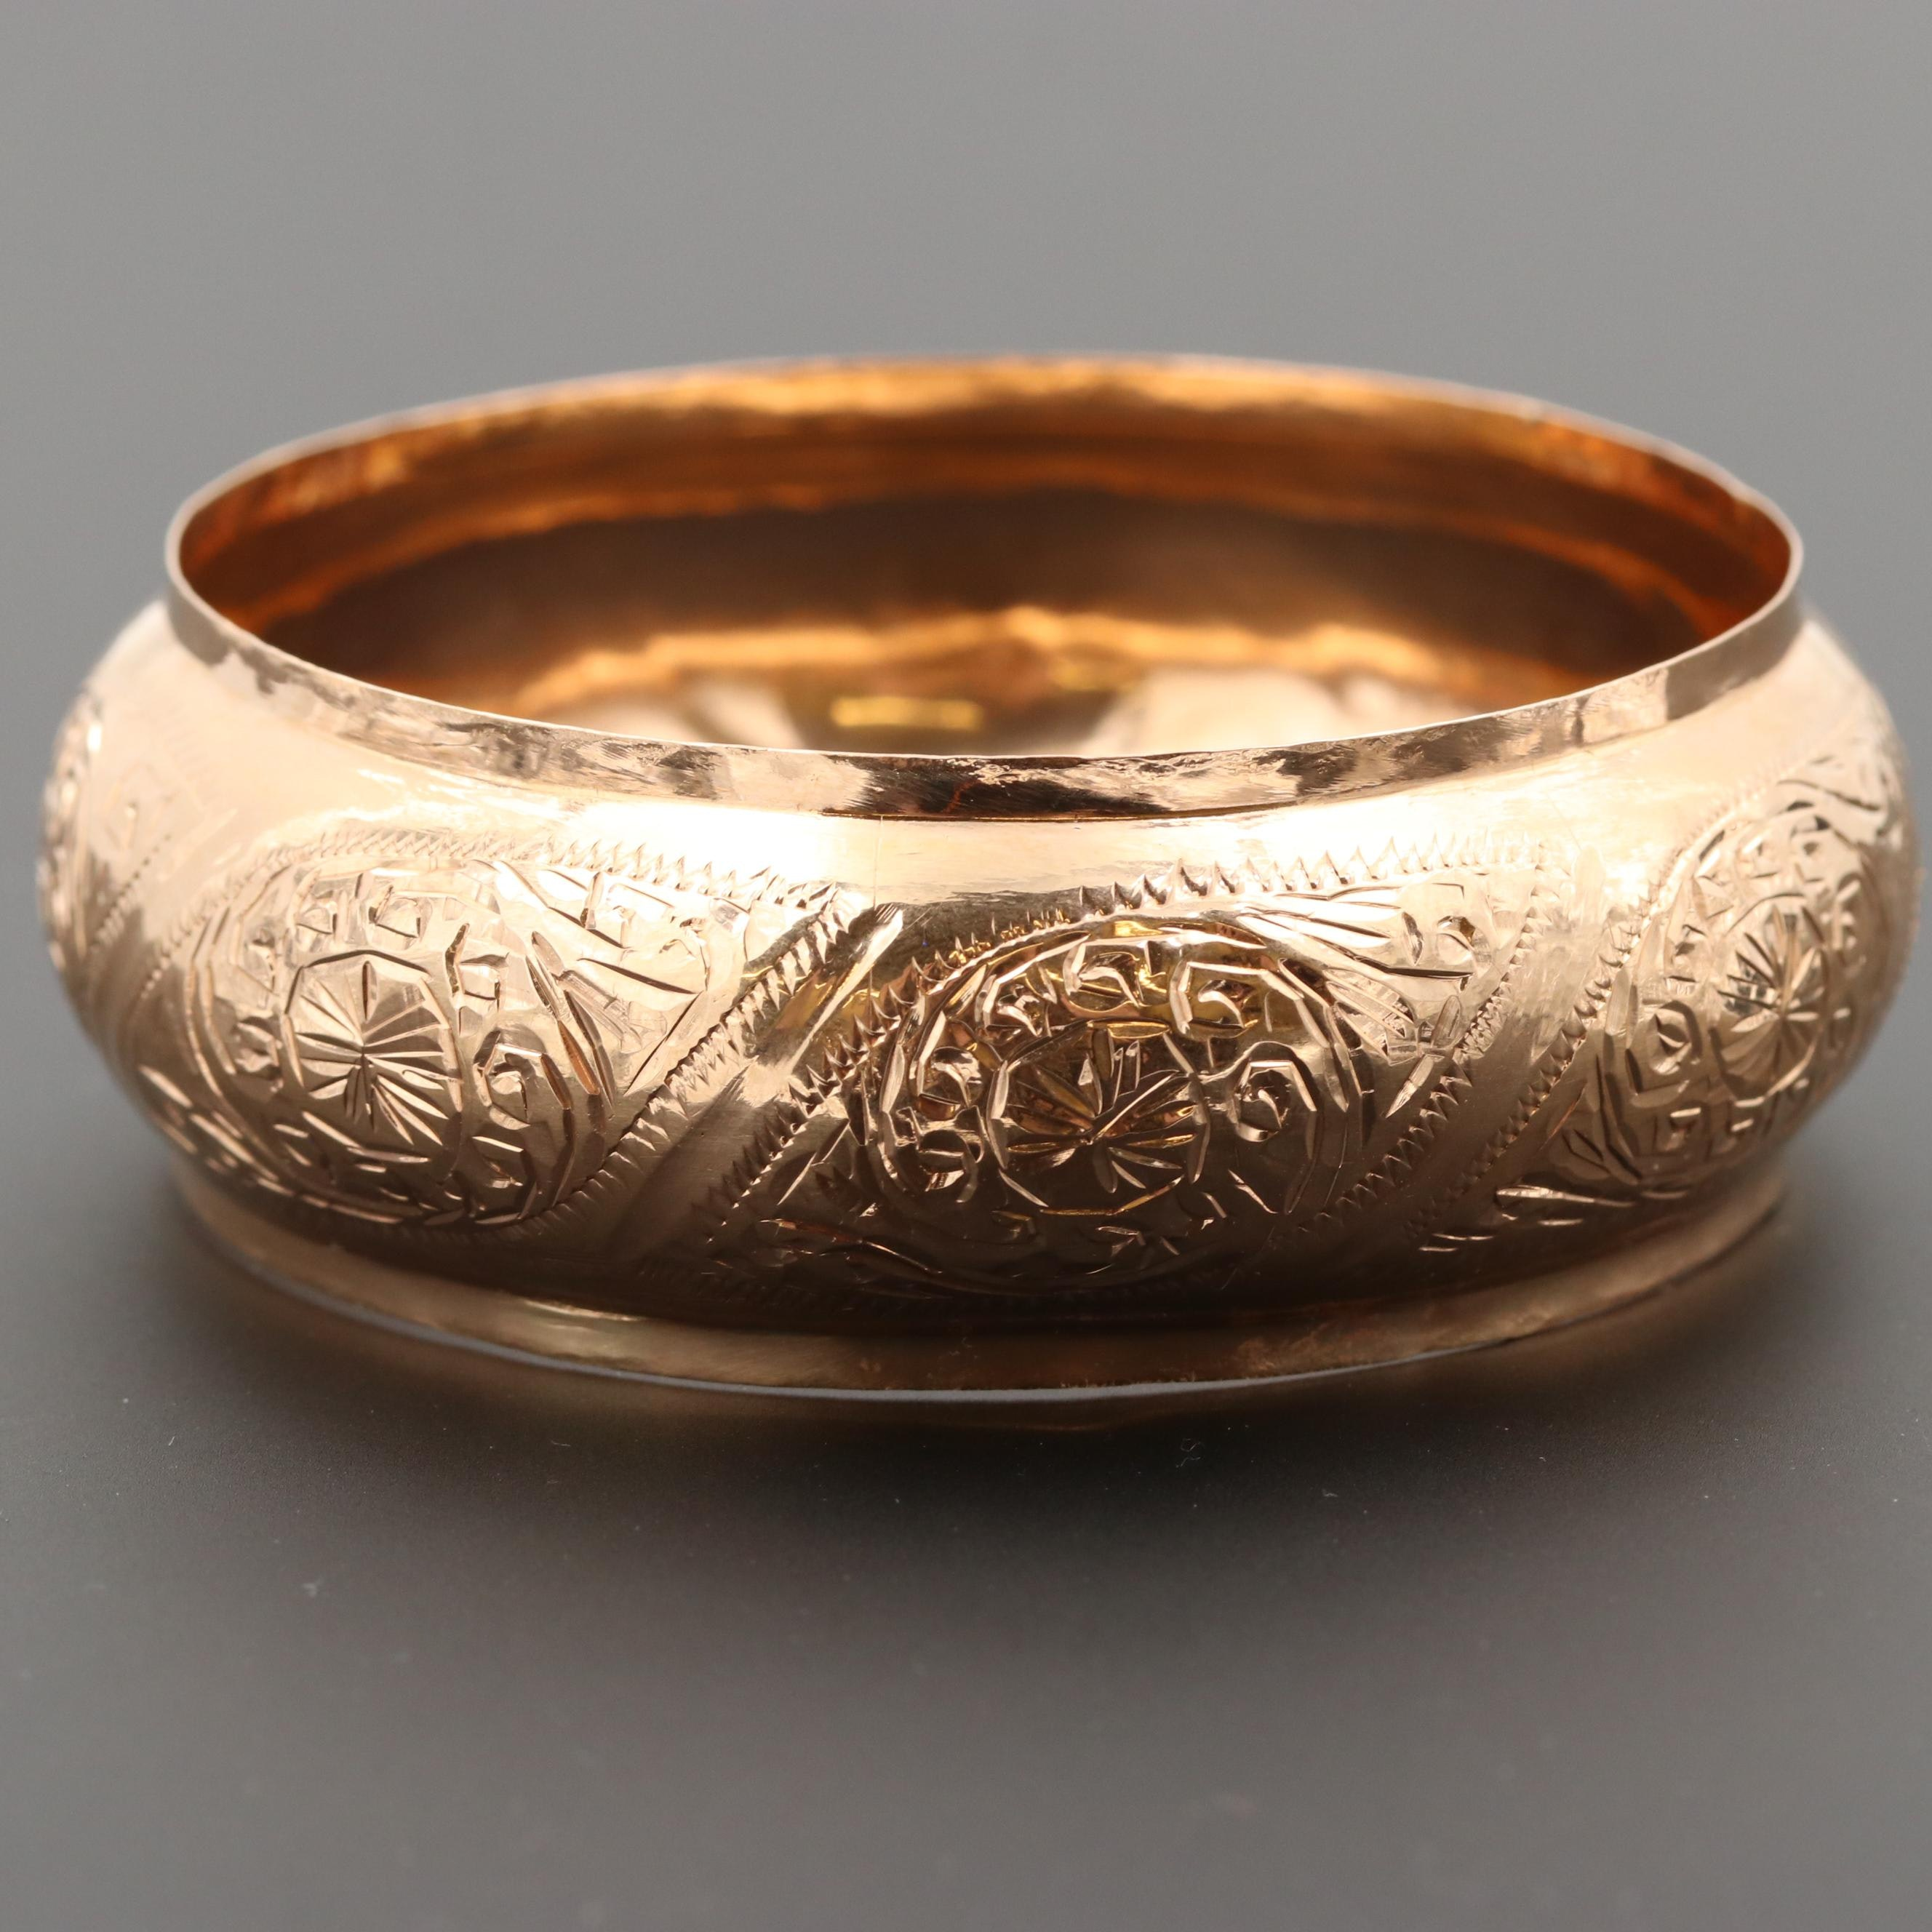 Vintage Moroccan 14K Yellow Gold Domed Repoussé Bangle Bracelet